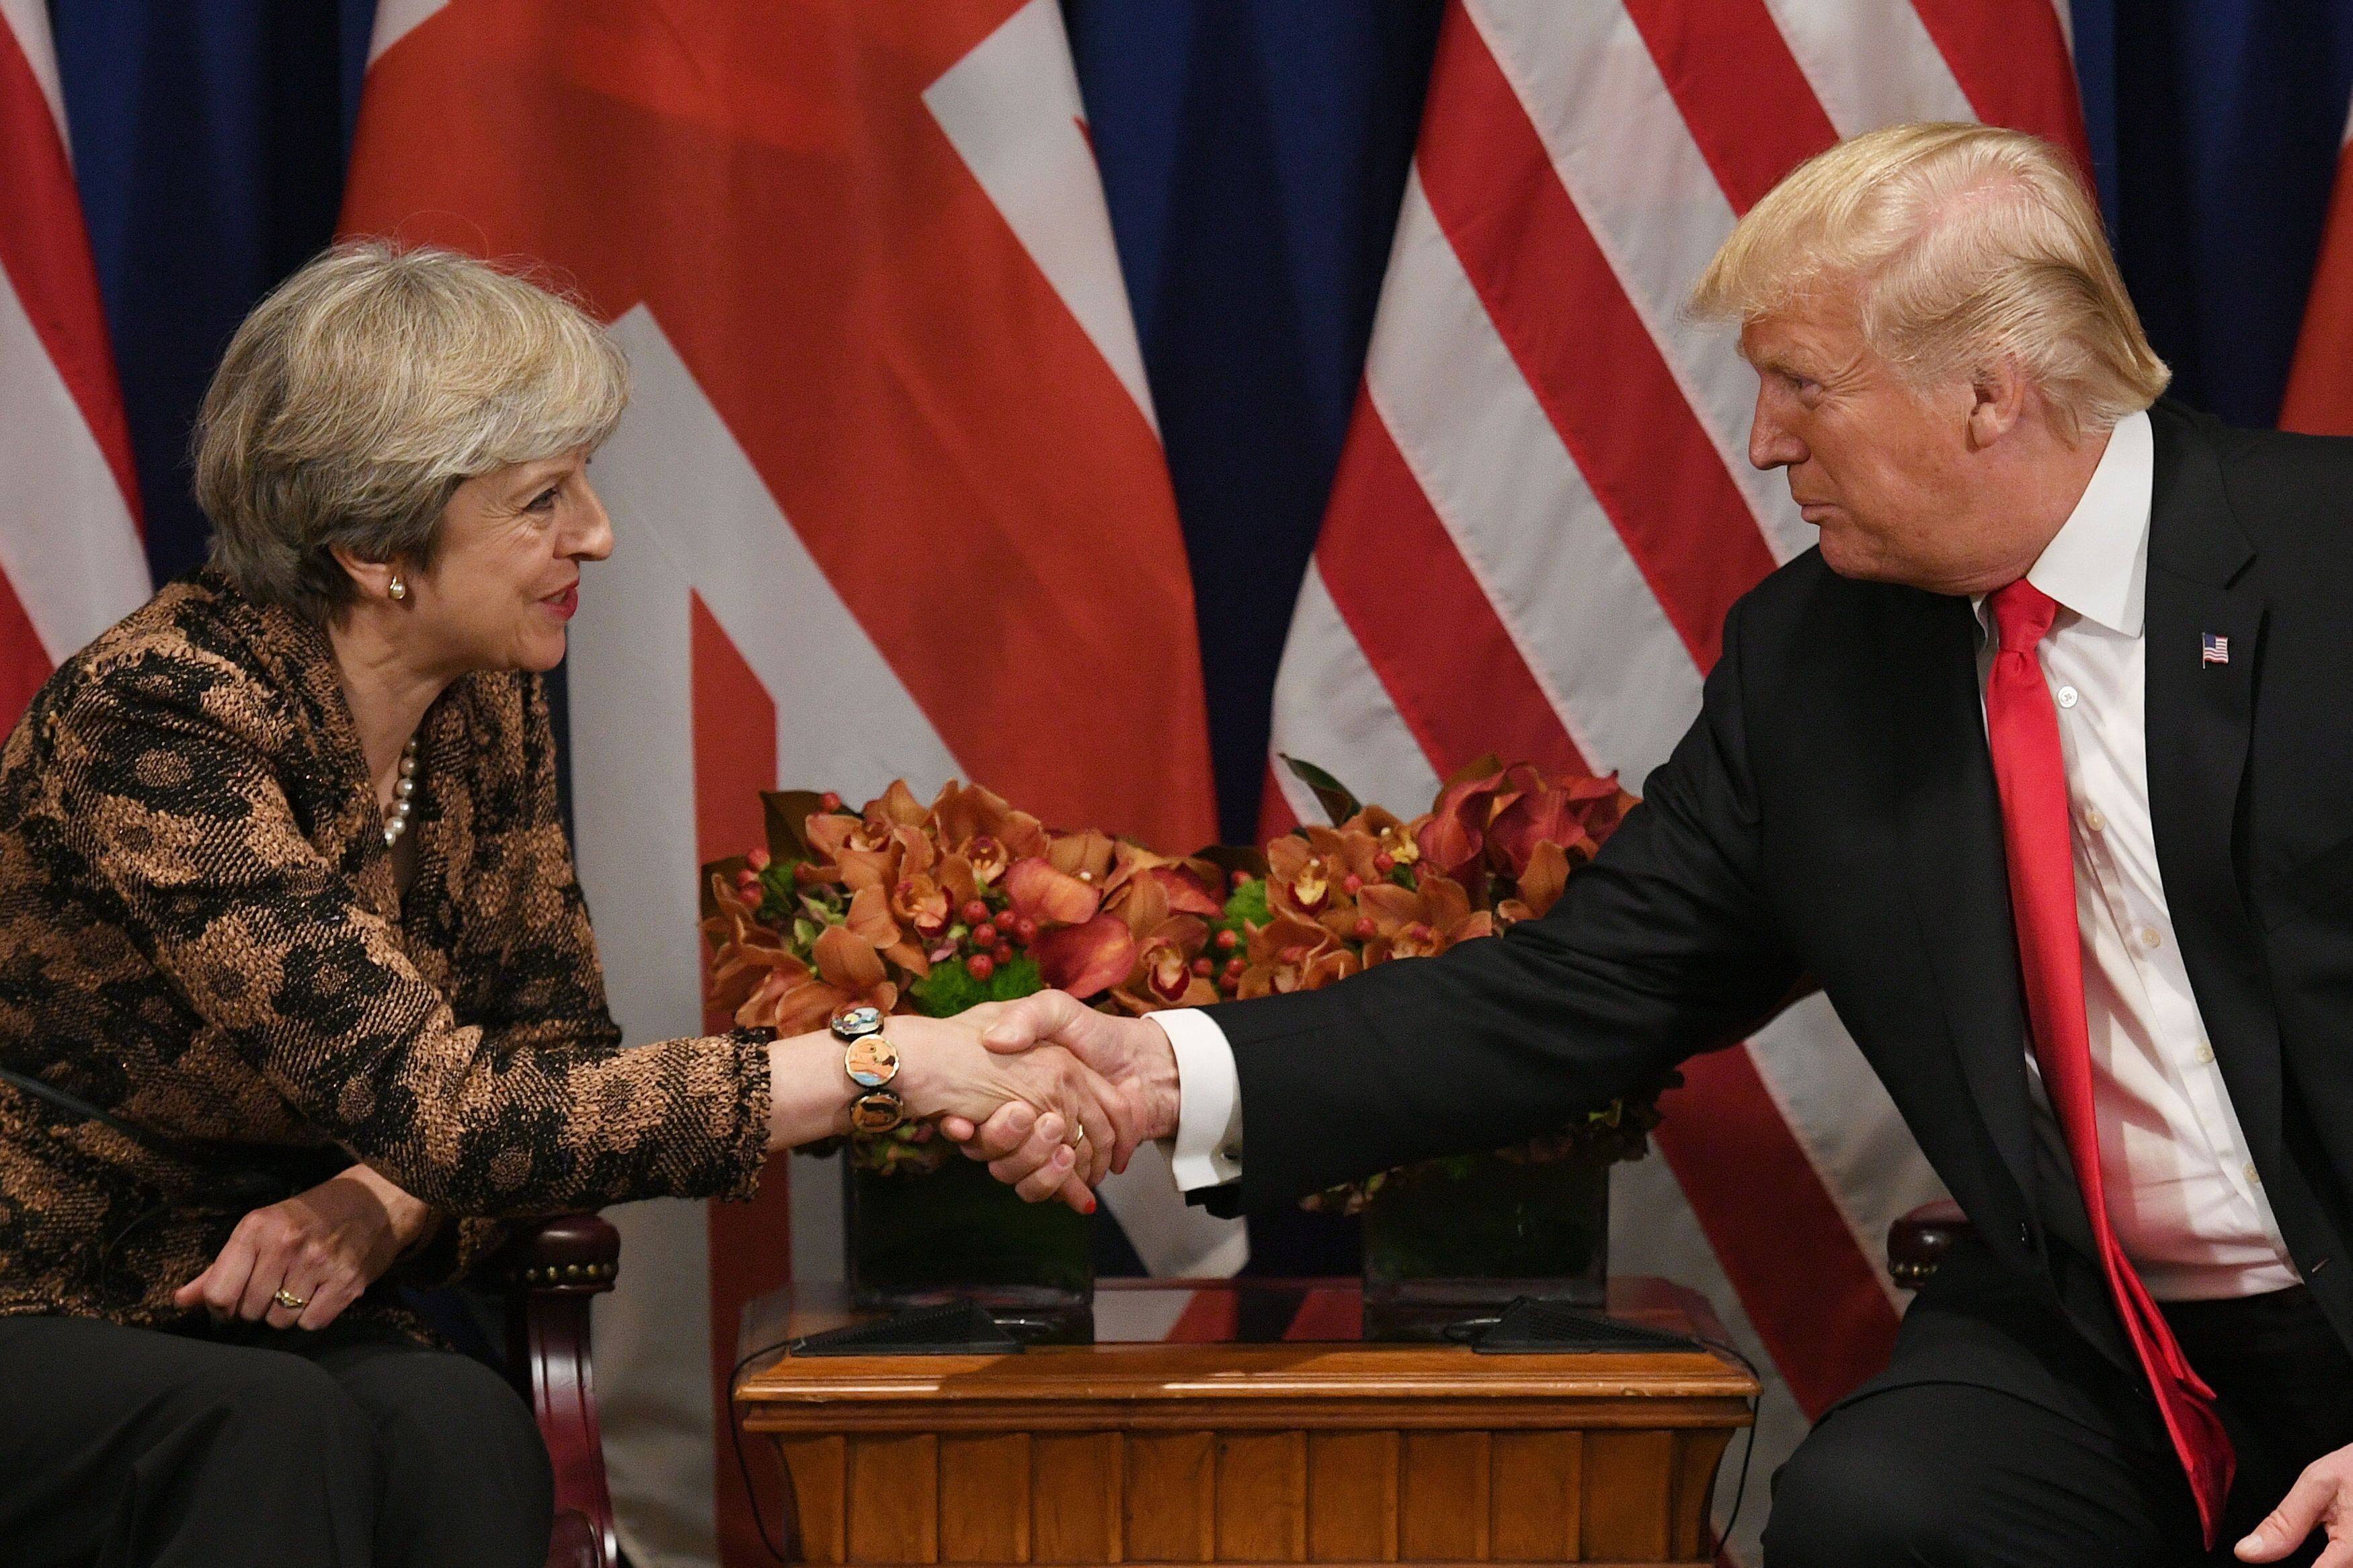 US President Donald Trump set to meet the Queen on United Kingdom visit